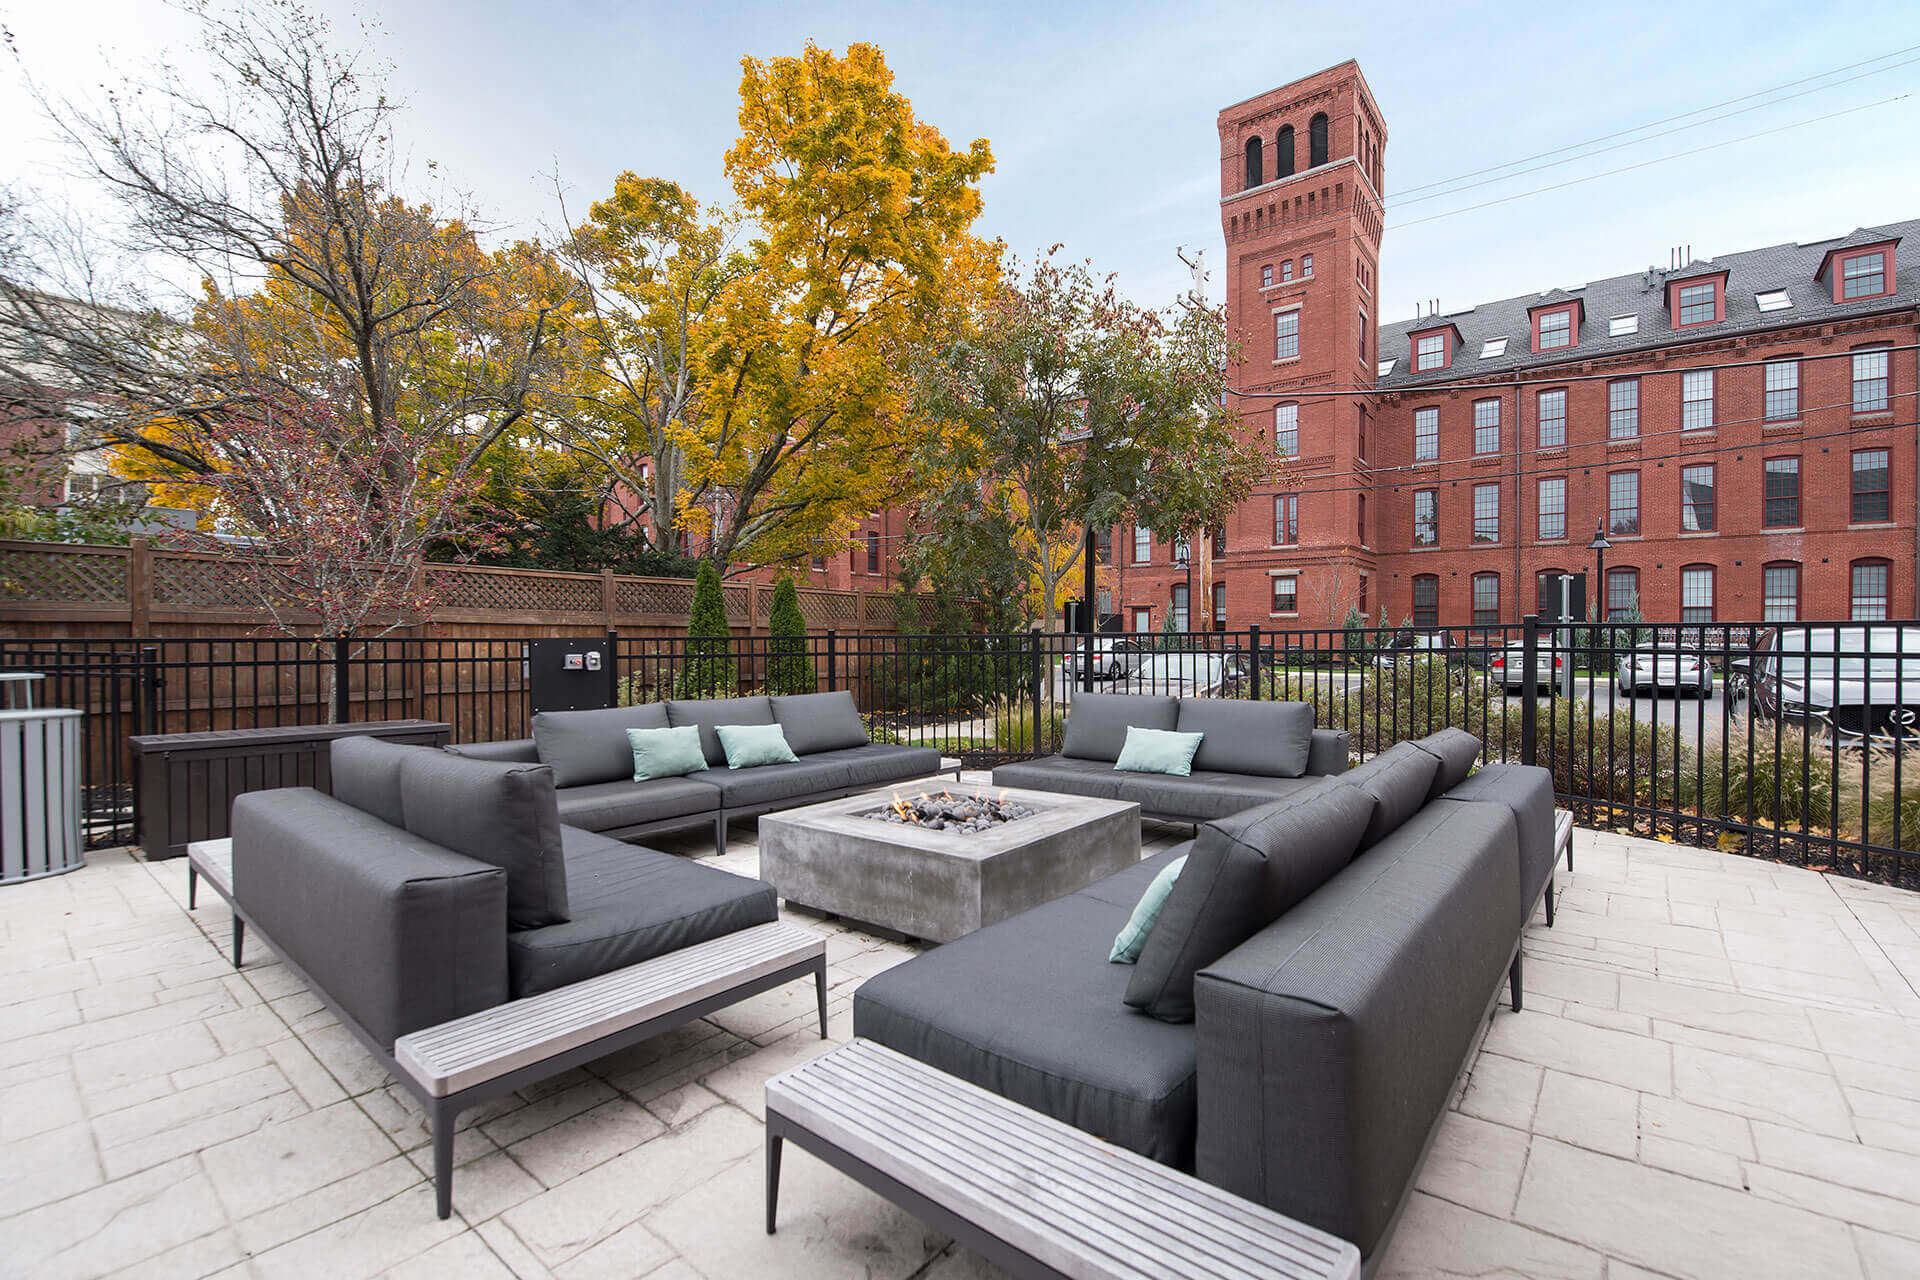 Fire pit and seating at Jack Flats by Windsor, MA, 02176